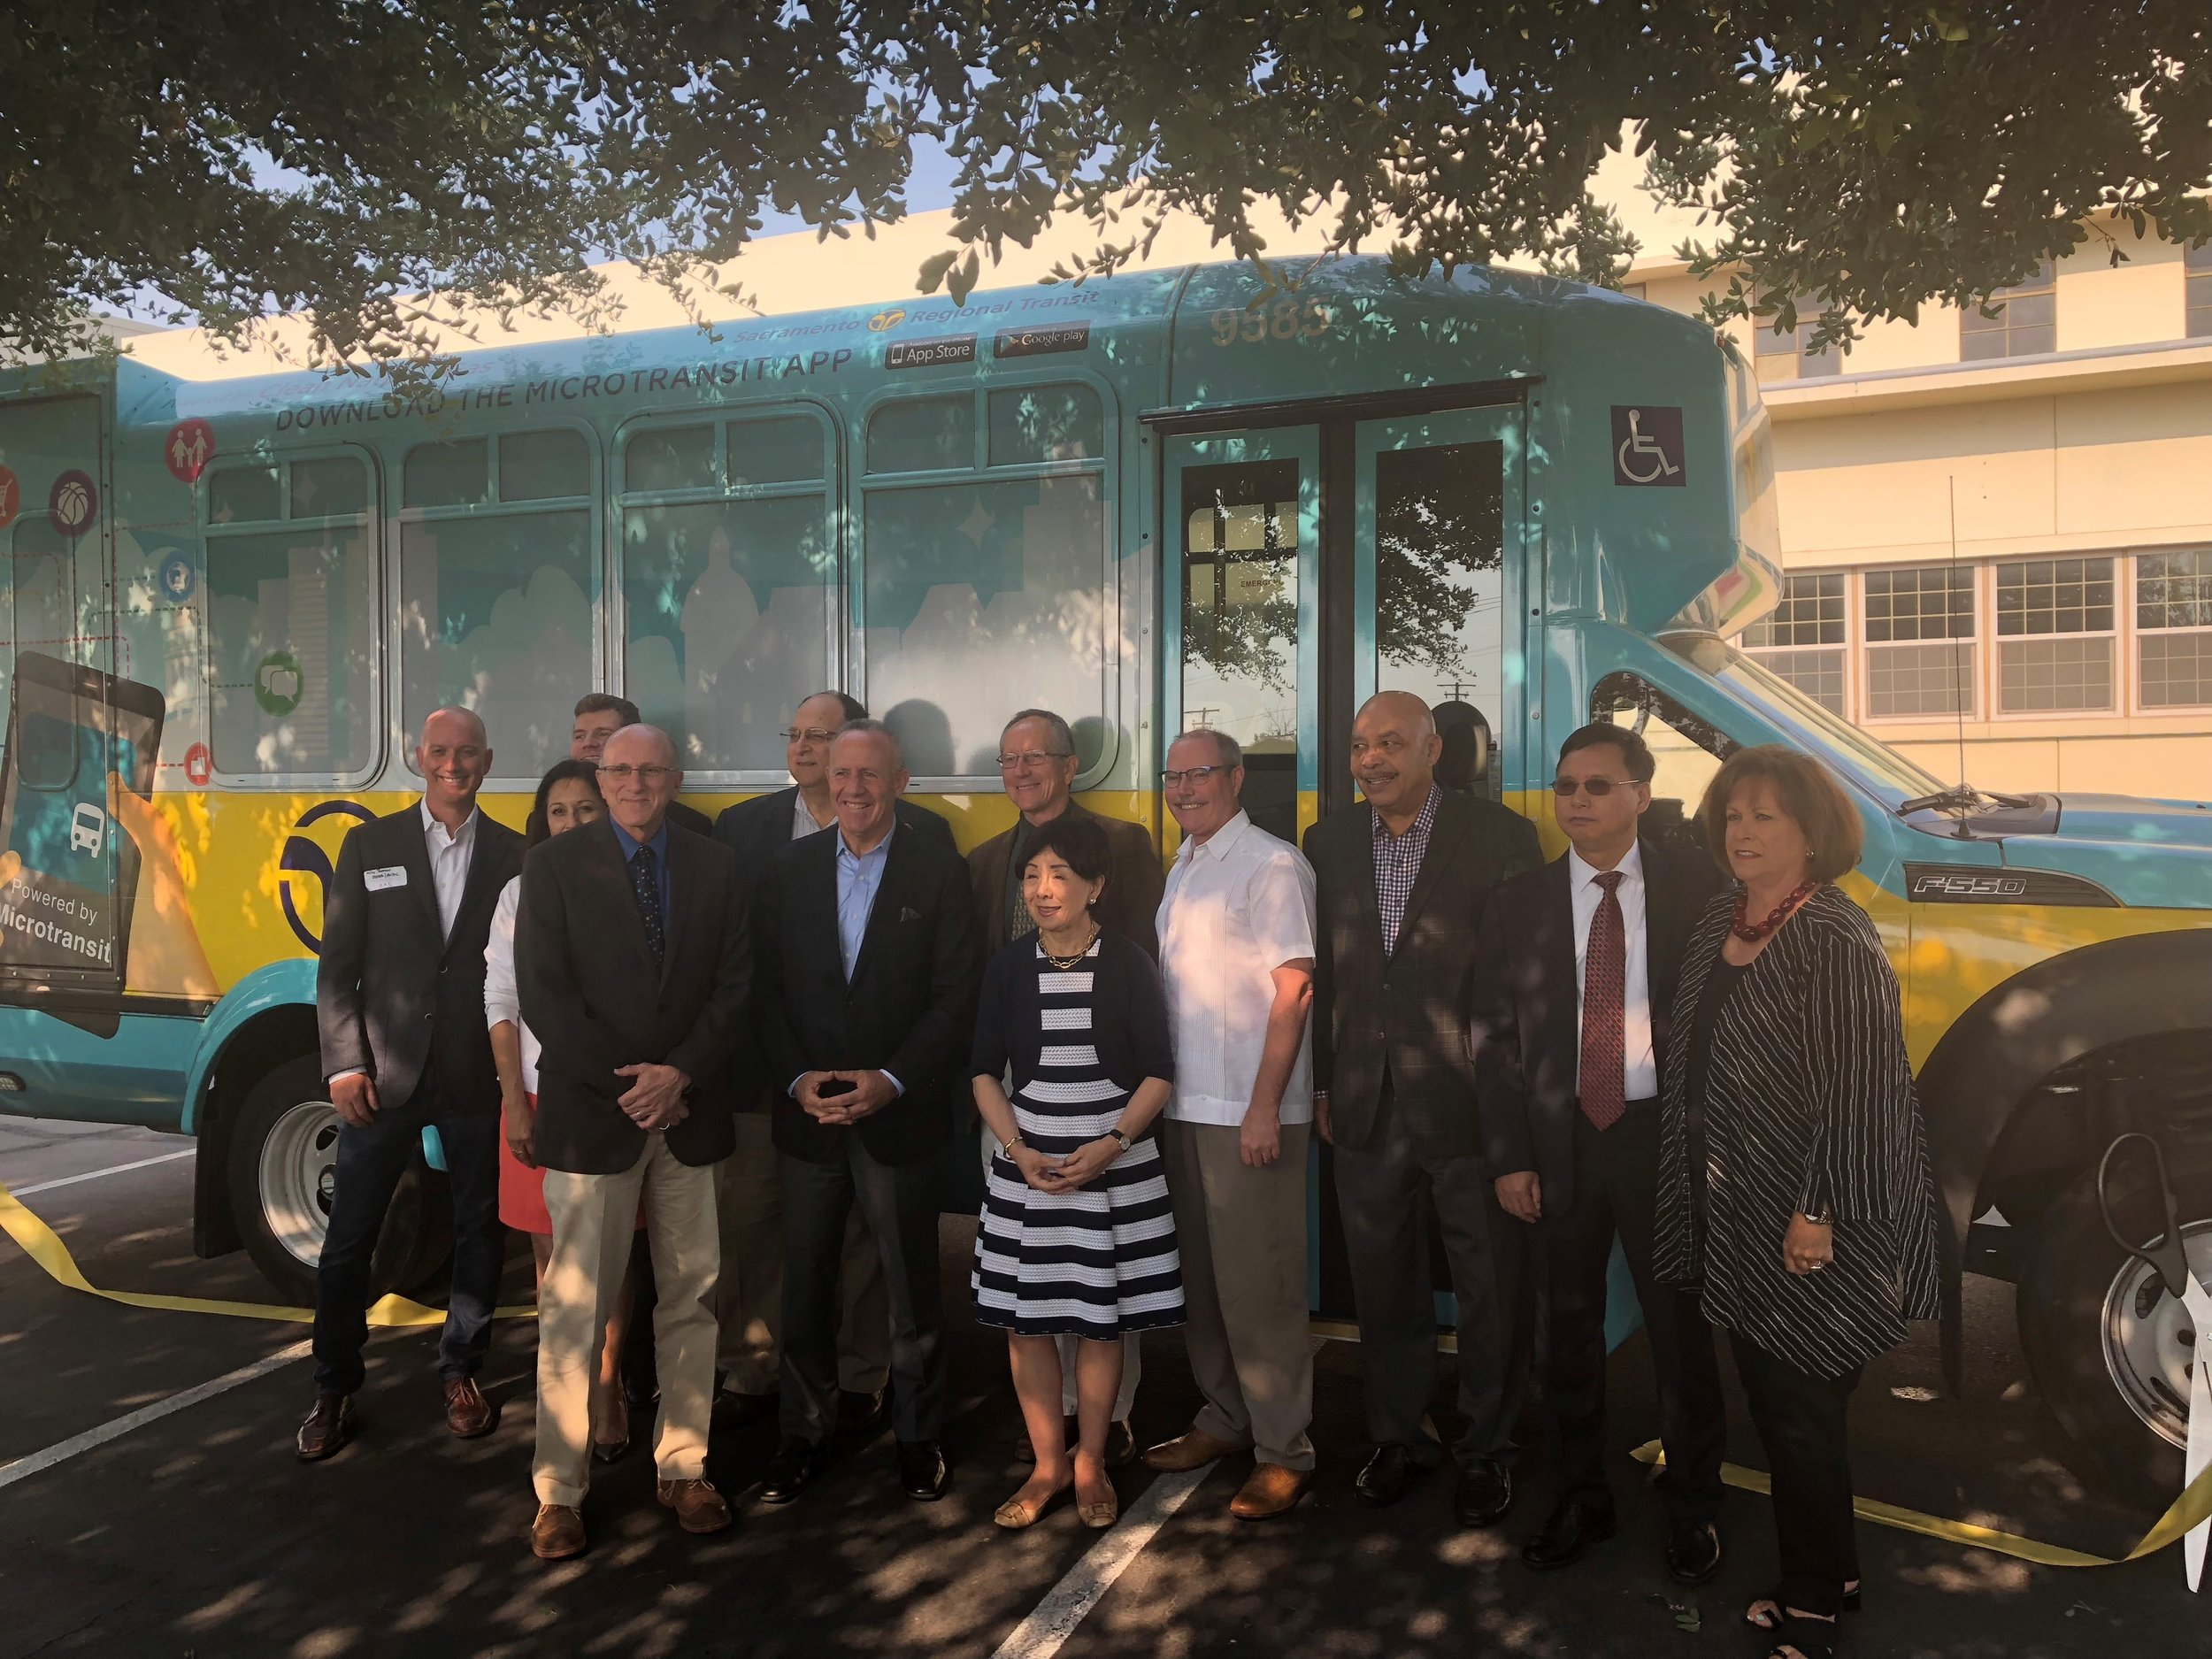 Mayor Darrell Steinberg joined other elected officials and SacRT staff in front of the new microshuttle.